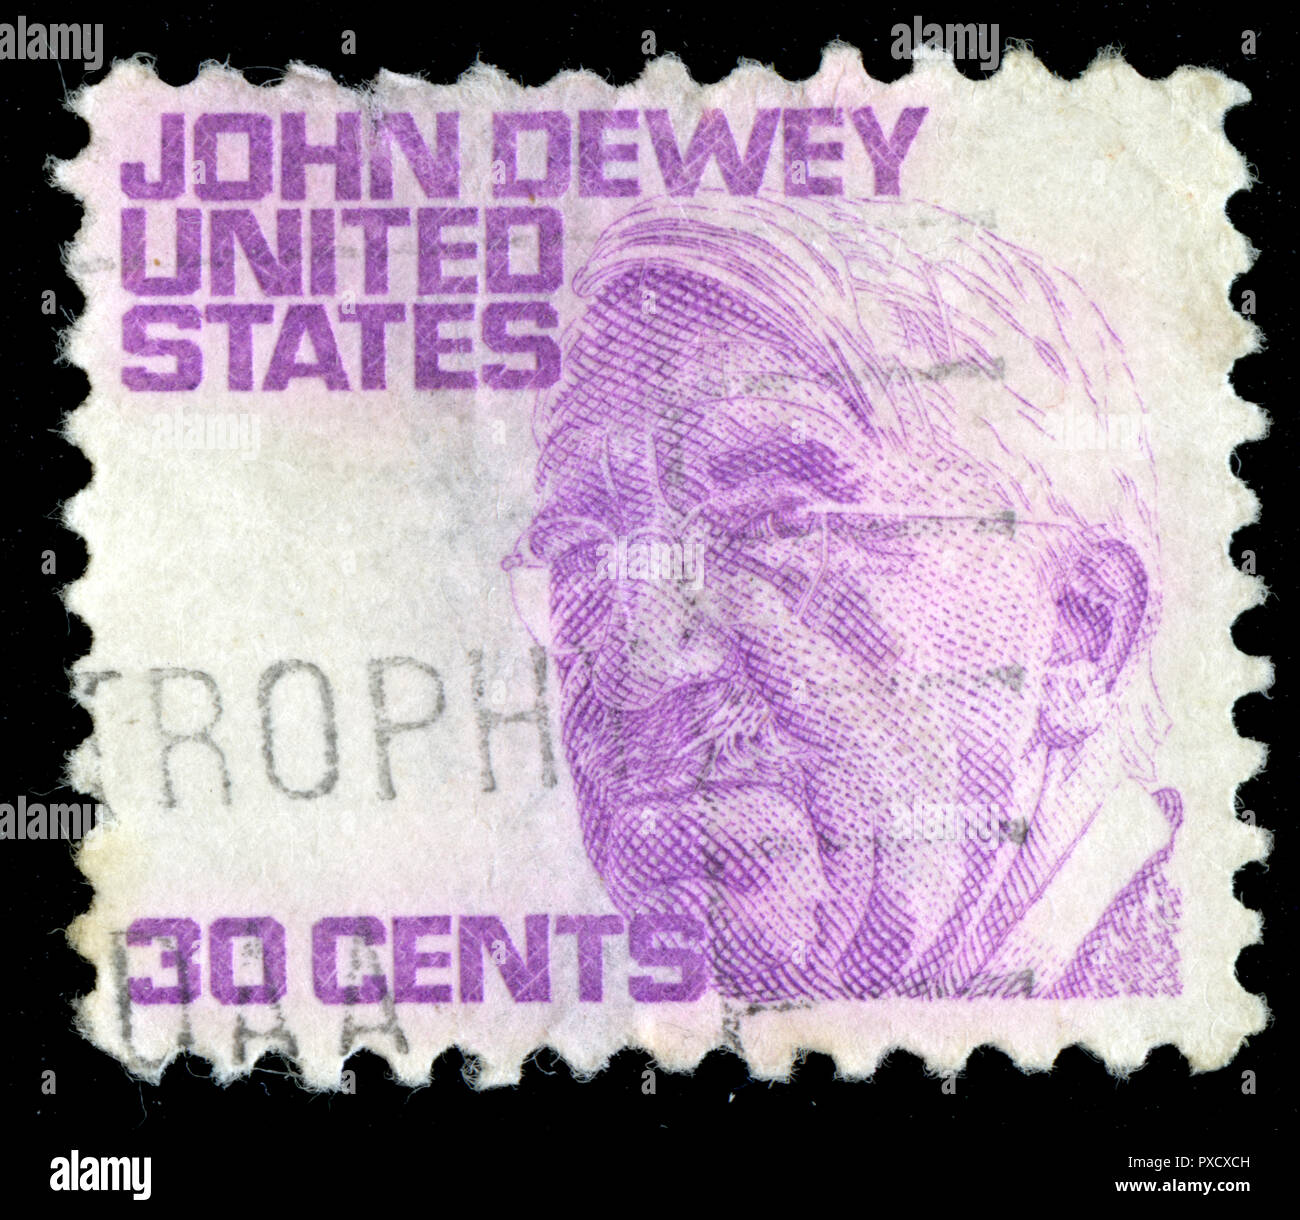 Postmarked stamp from United States of America (USA) in the Famous Americans series issued in 1968 - Stock Image